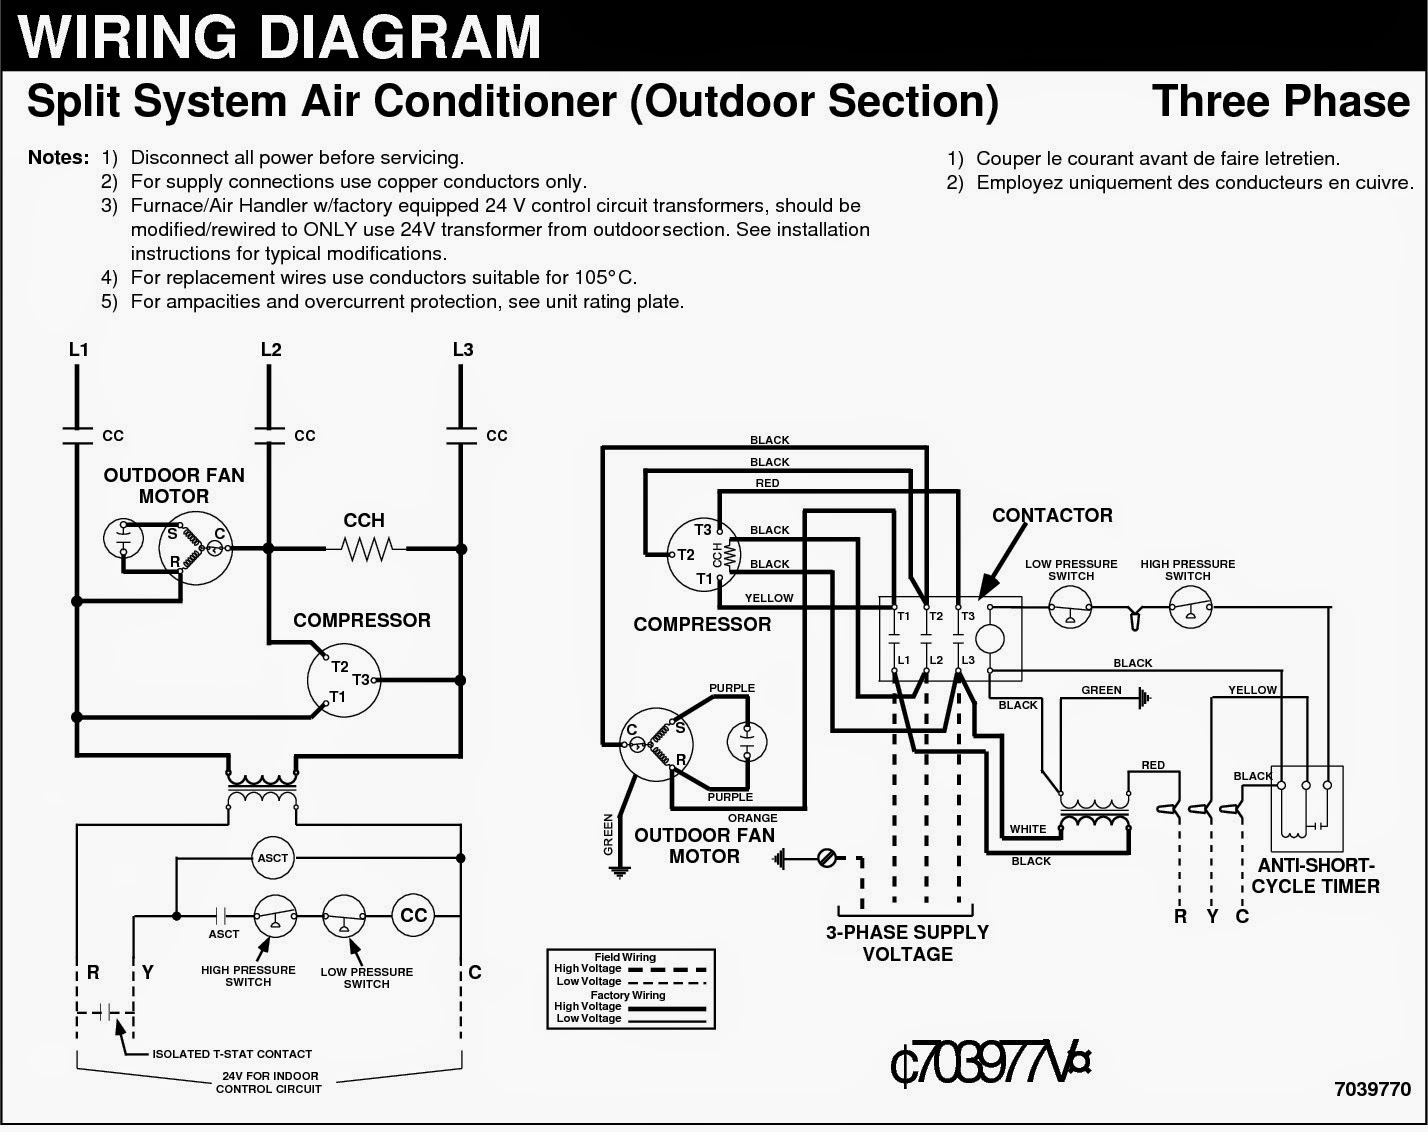 3+phase electrical wiring diagrams for air conditioning systems part two ac wiring diagram at reclaimingppi.co